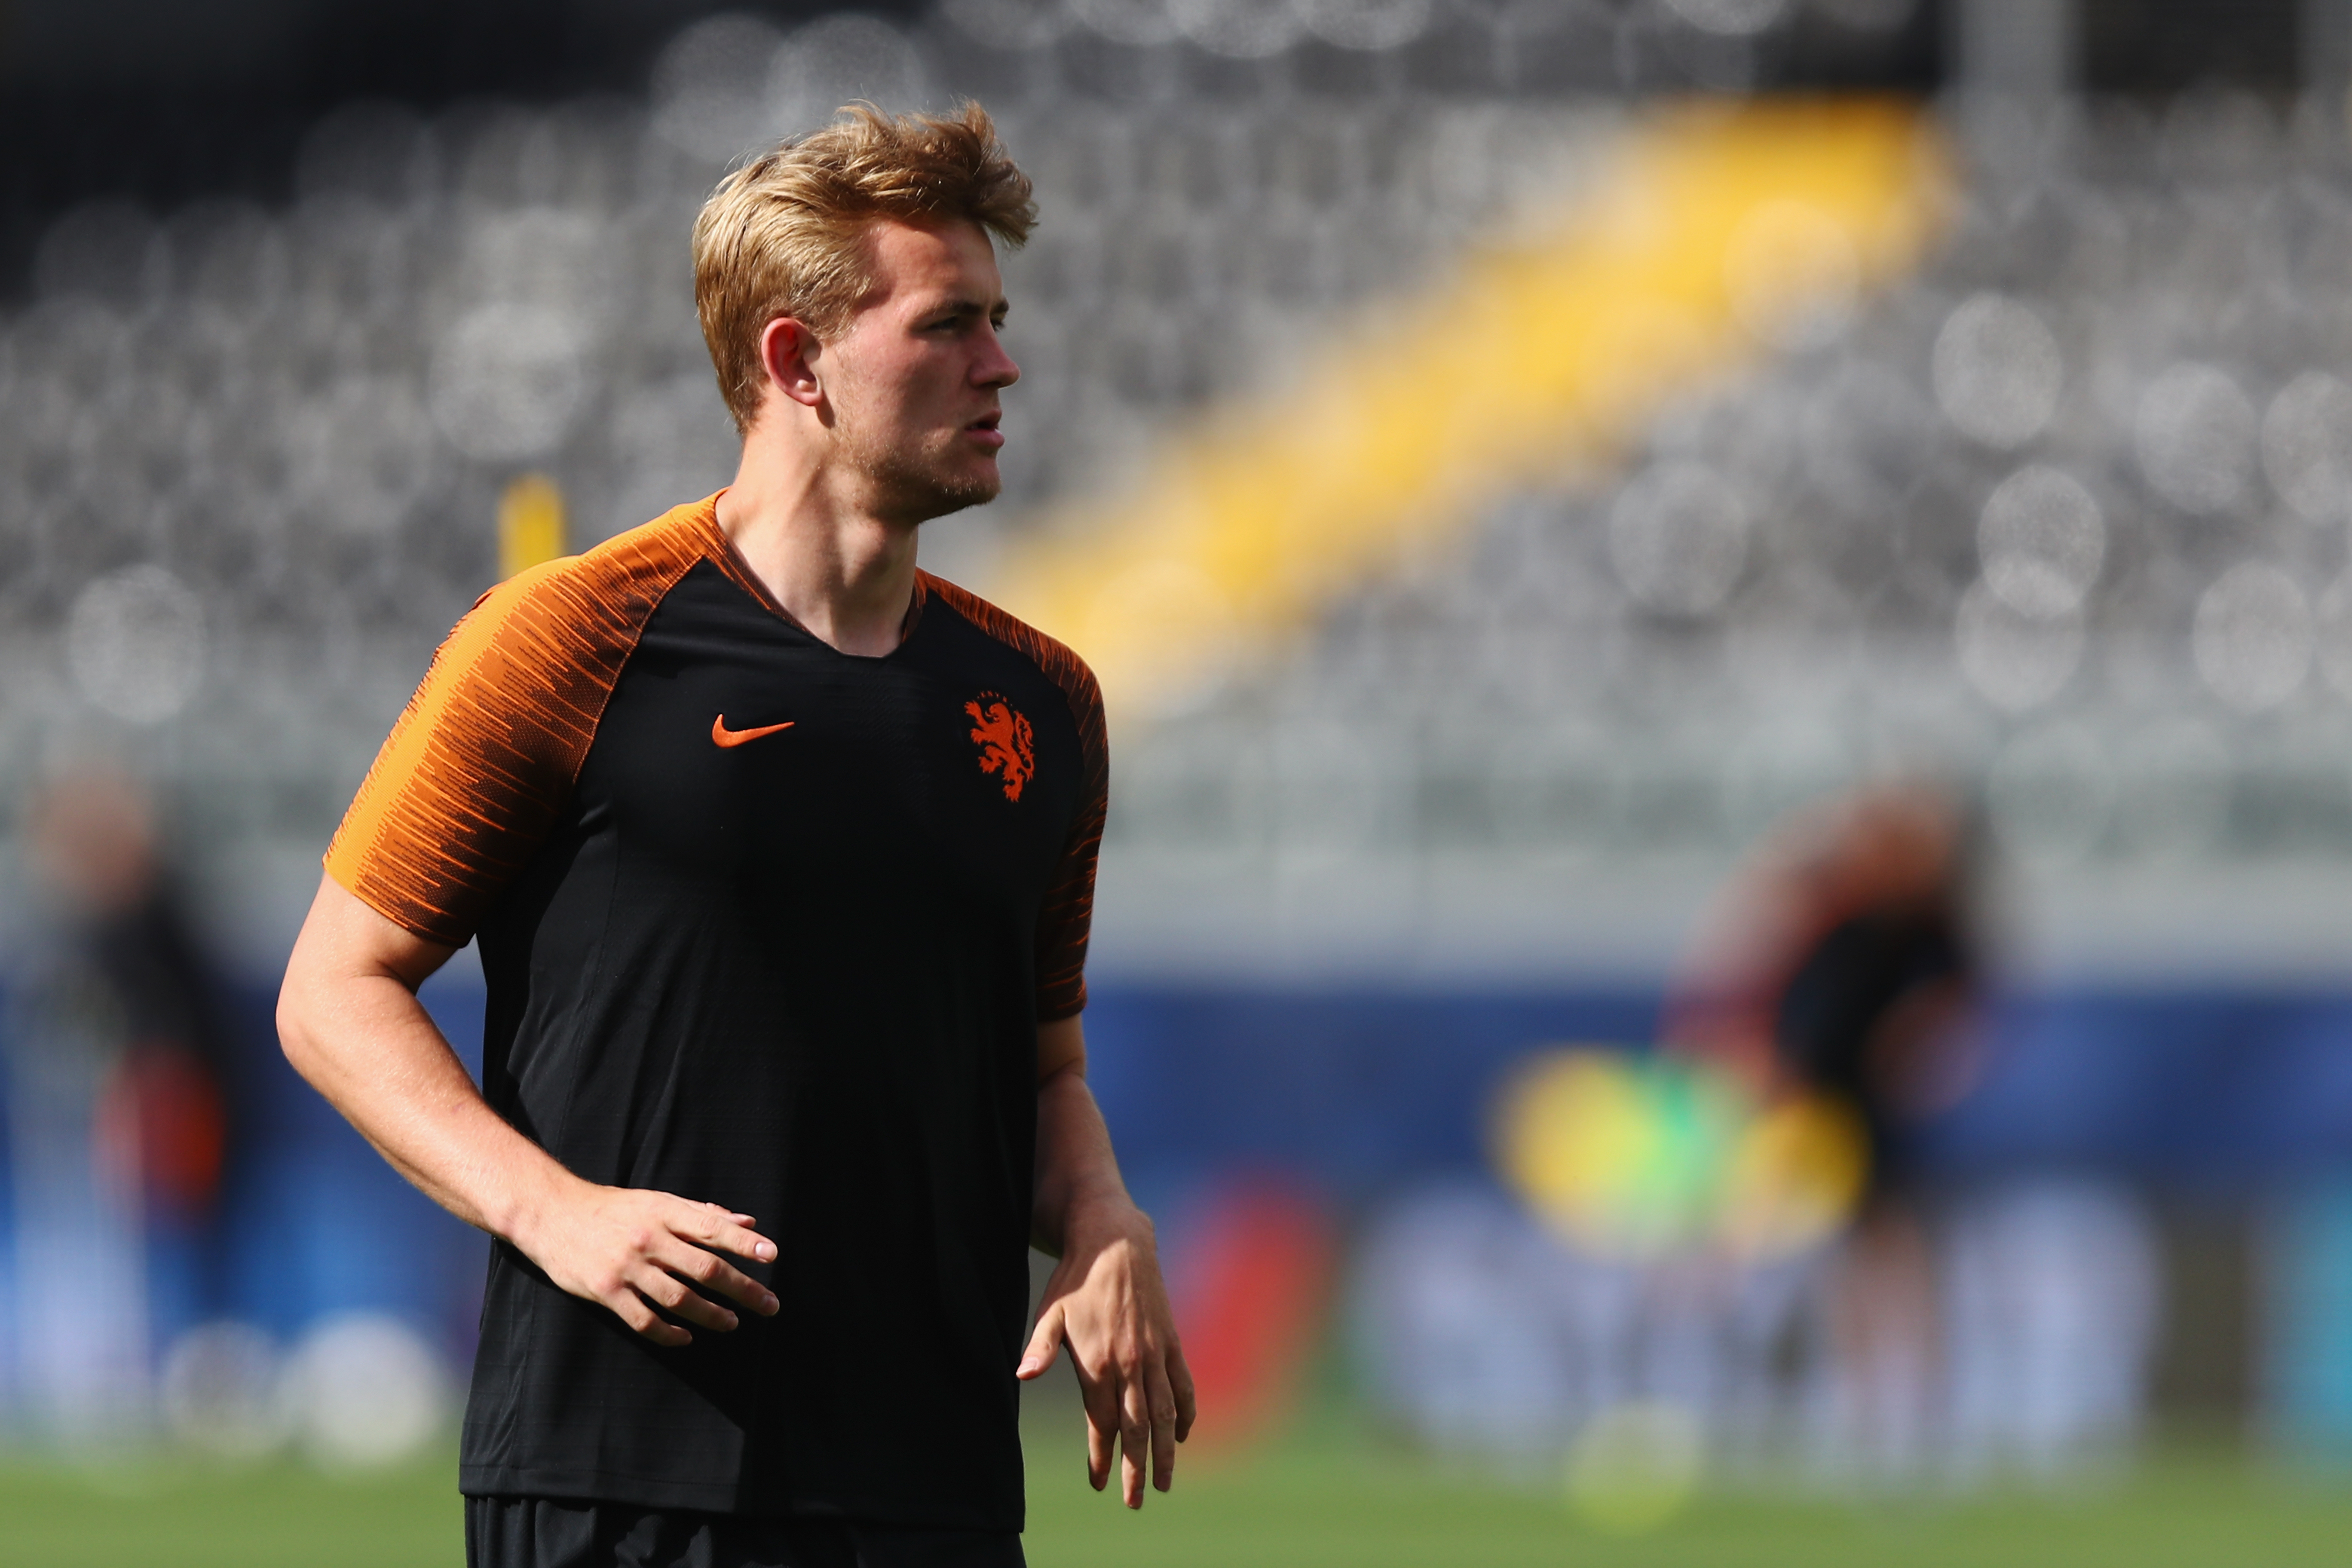 Chelsea are ready to break the bank for Juventus defender Mathijs de Ligt who could be their defensive ace for the upcoming decade